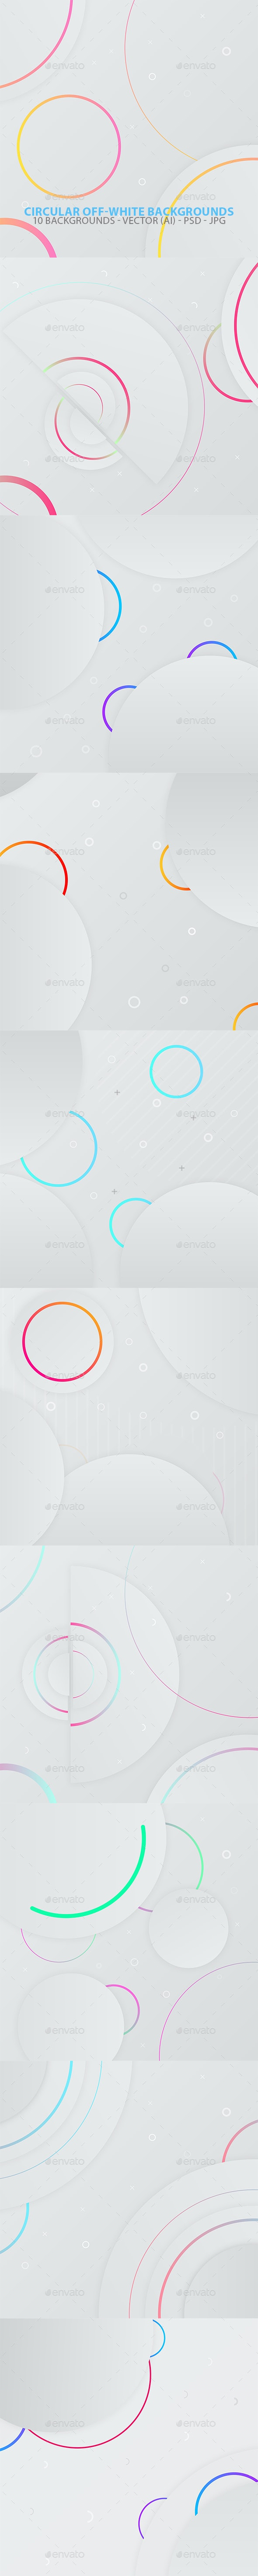 Circular Off-white Backgrounds - Abstract Backgrounds